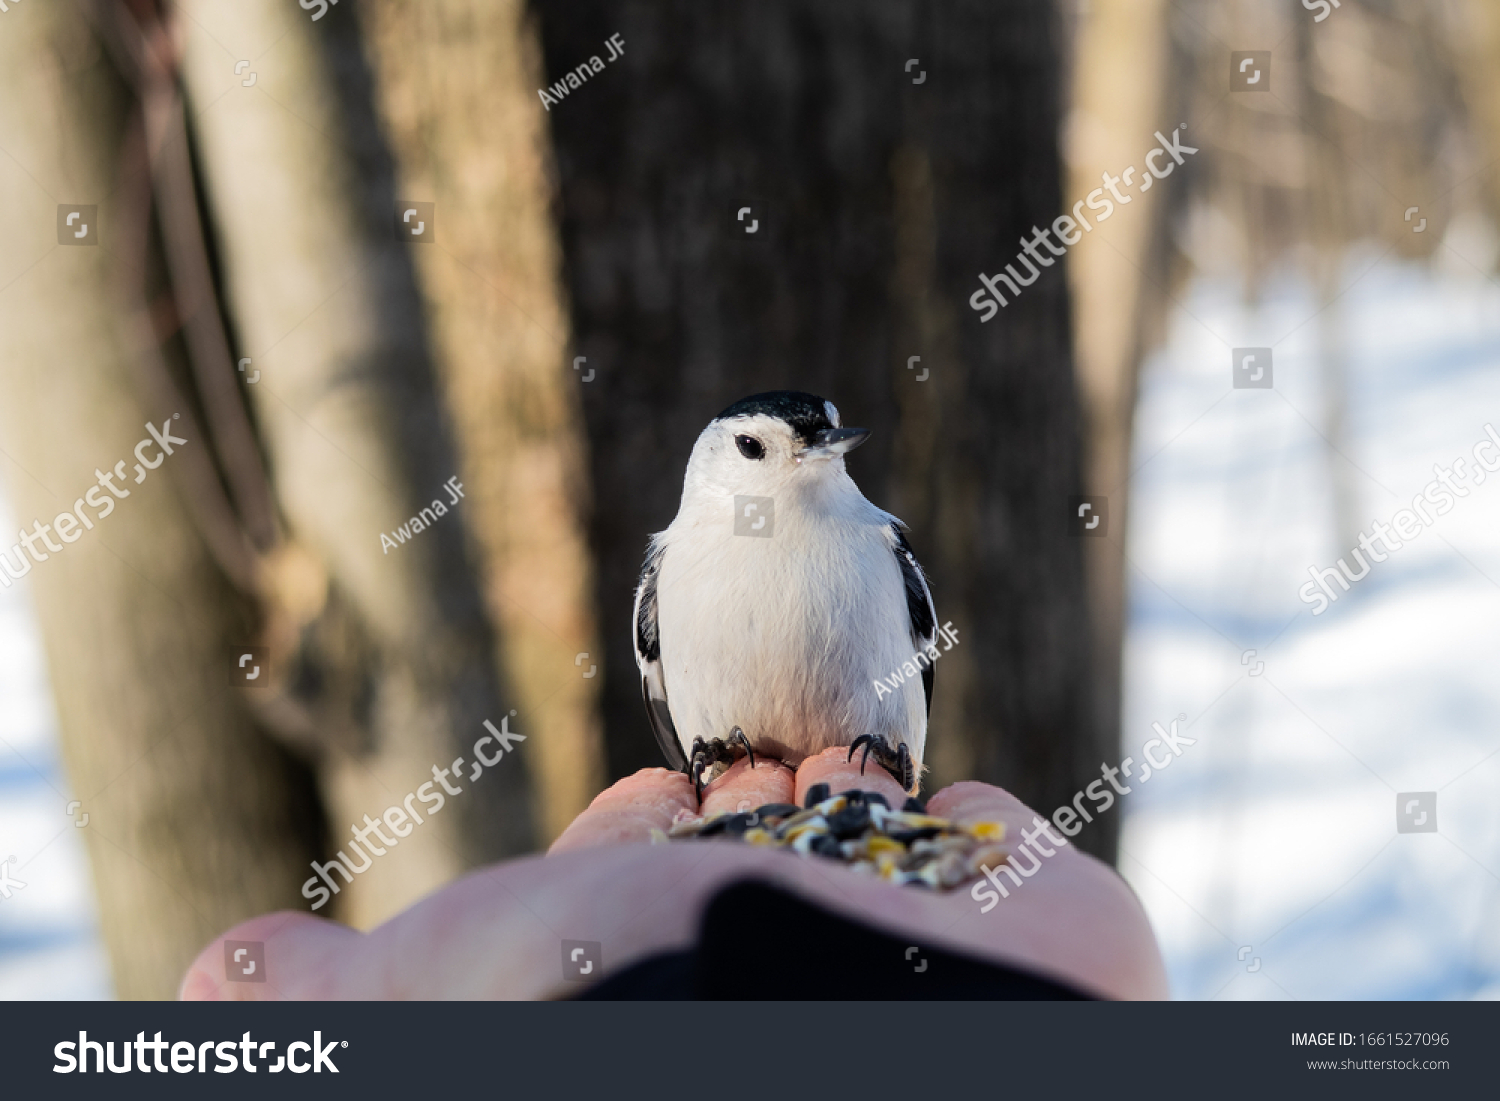 stock-photo-closeup-of-a-white-breasted-